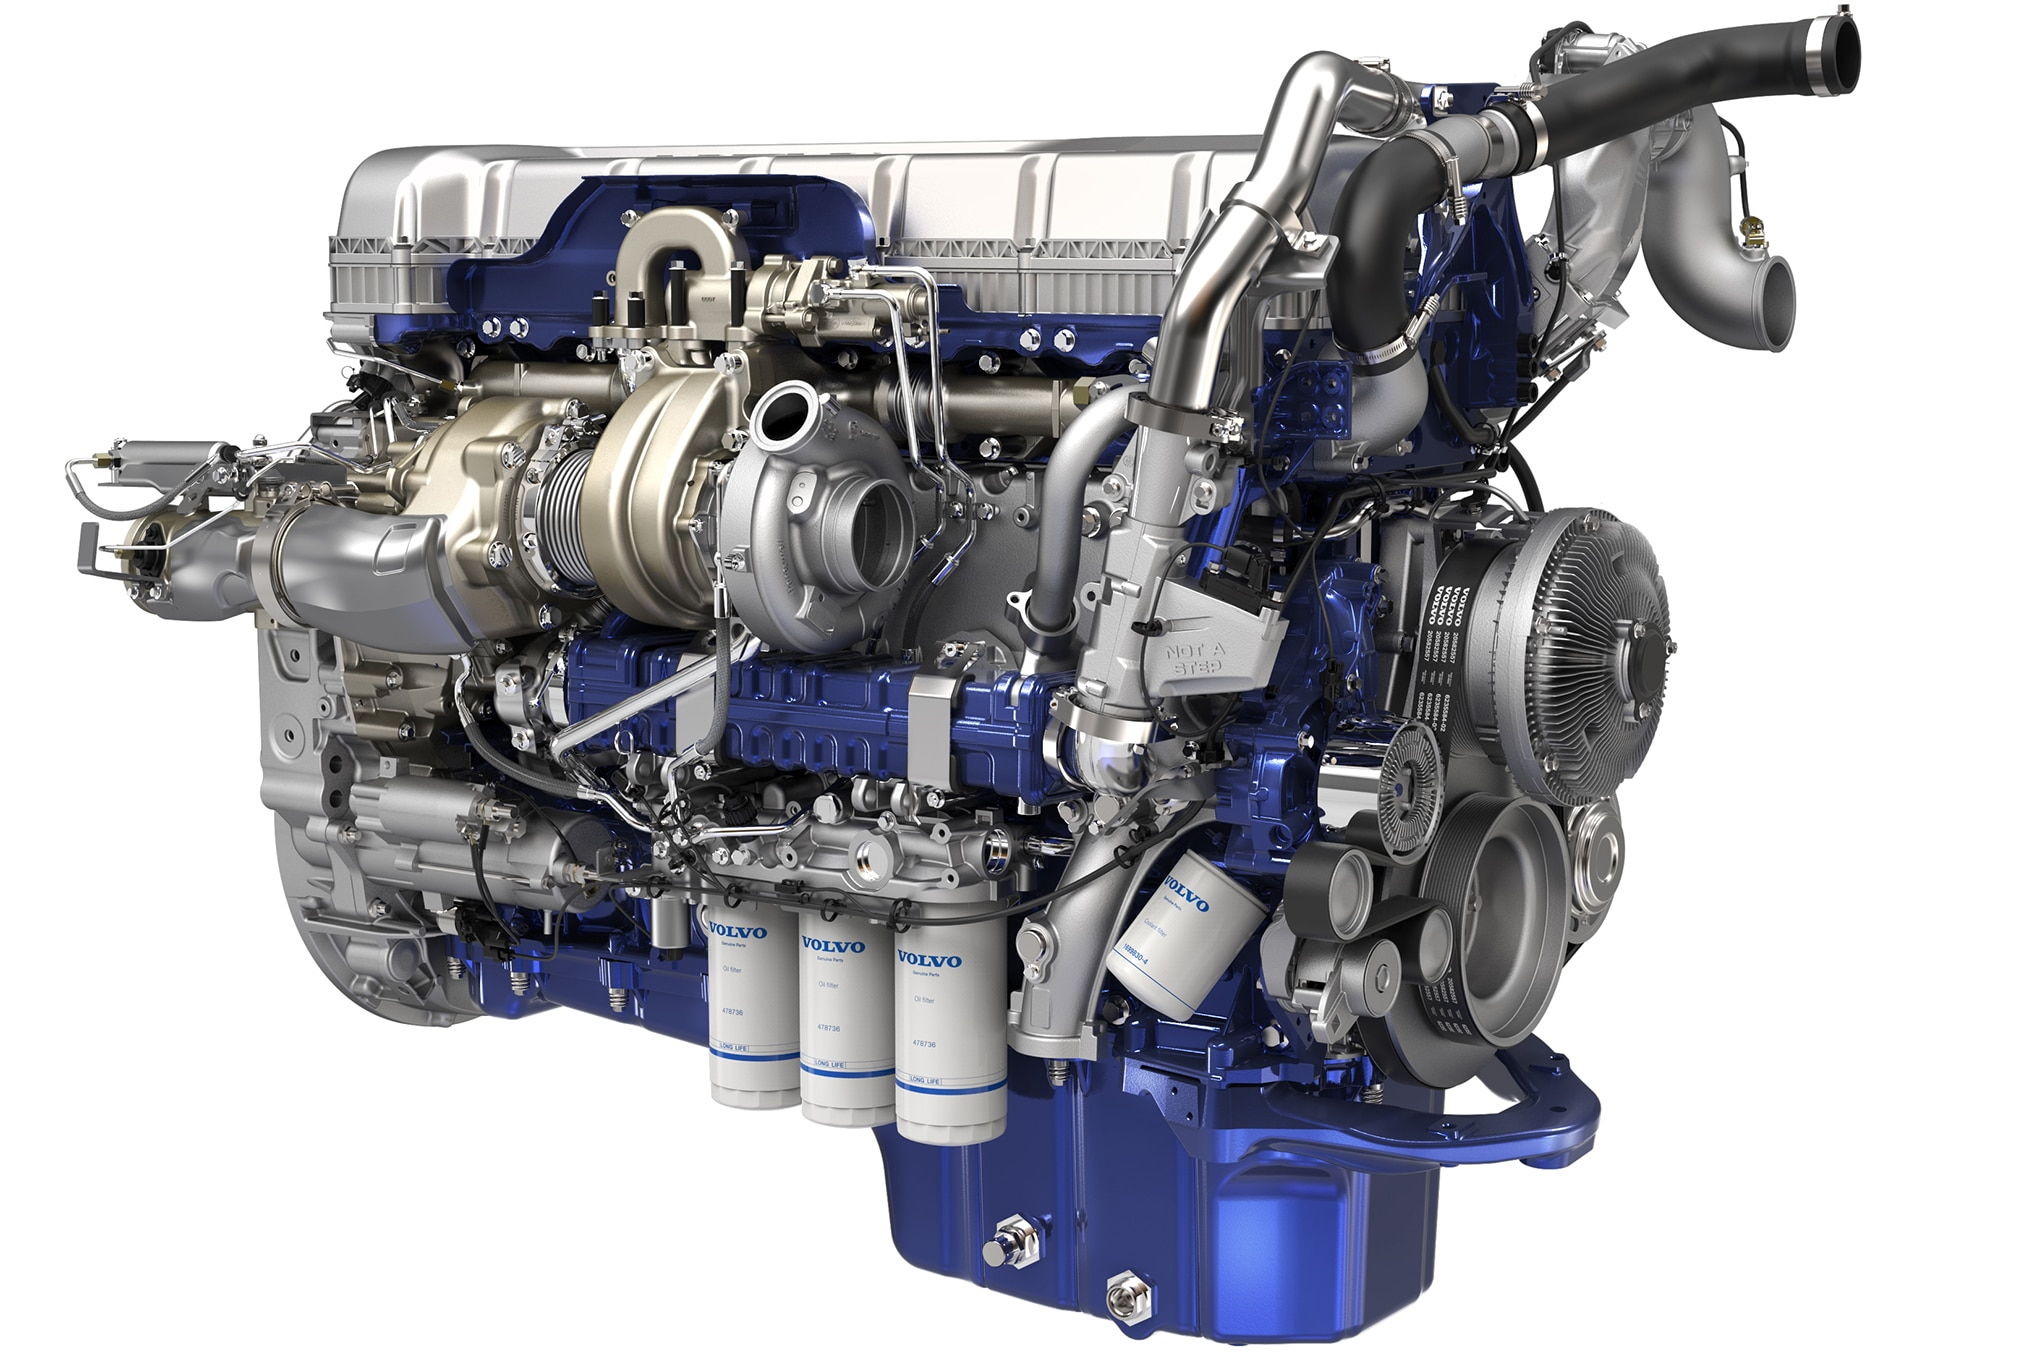 [DIAGRAM_38ZD]  The new Volvo D13 With Turbo Compounding Pushes Technology and Efficiency  in Trucking | Volvo Semi Truck Engine Diagram |  | Truck Trend